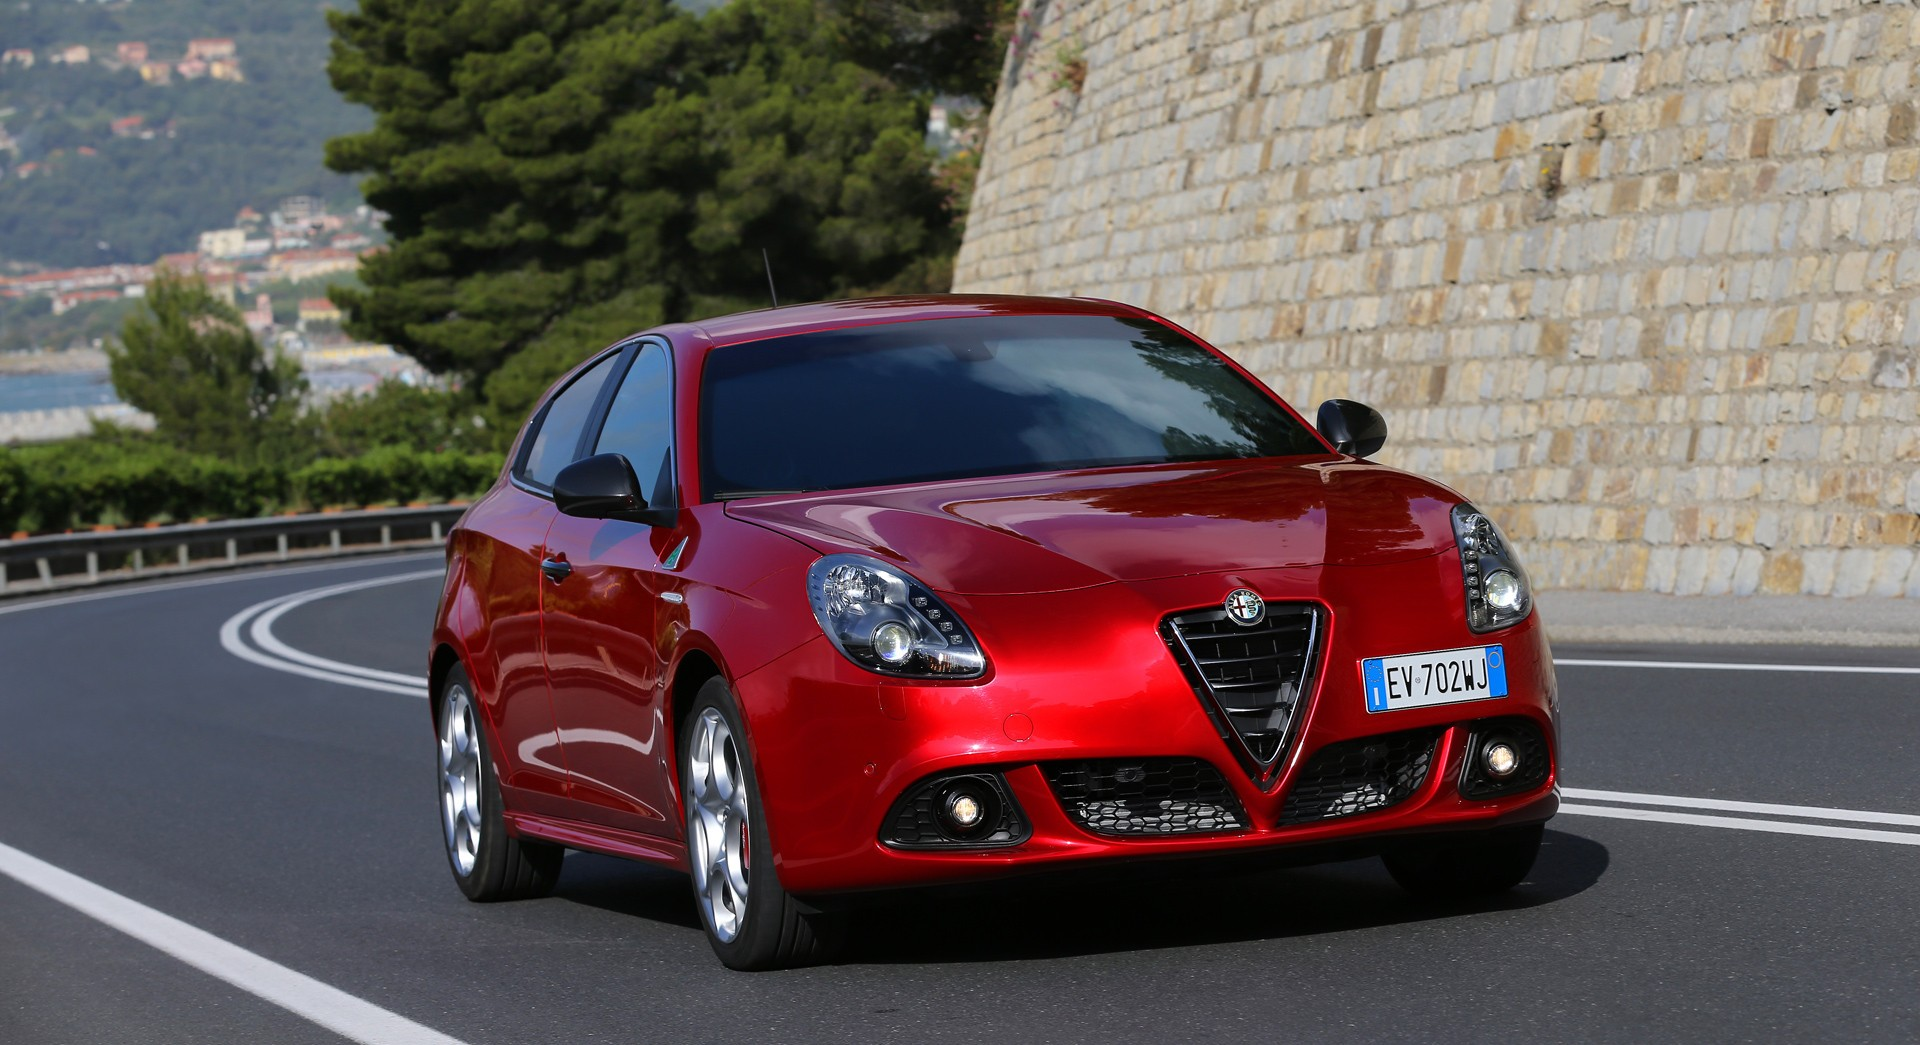 alfa romeo giulietta wallpaper red awesome